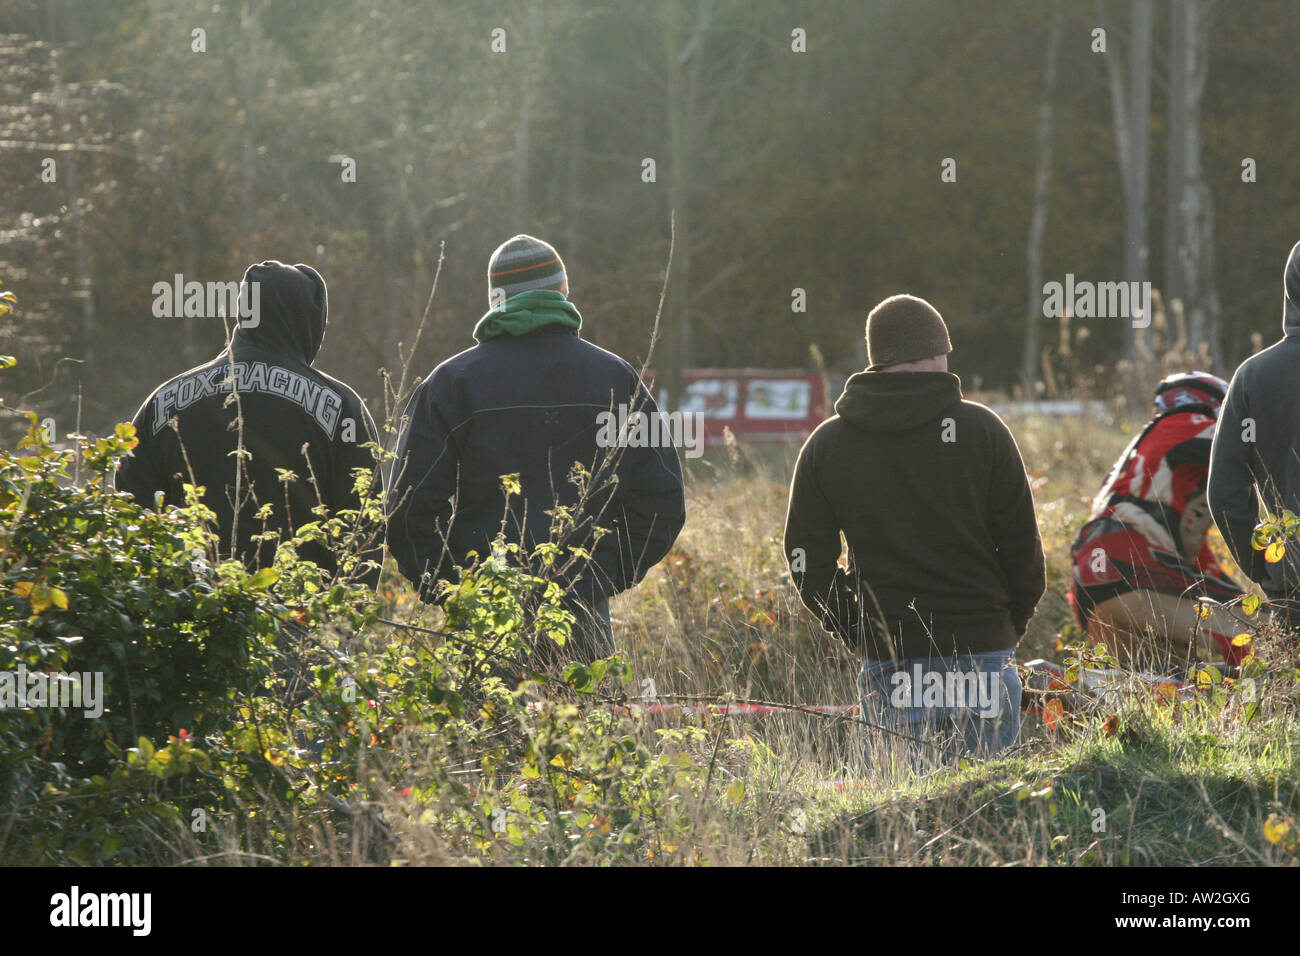 Four young men with their backs to the camera and lit from behind by winter afternoon sunlight watch a motorcycle - Stock Image